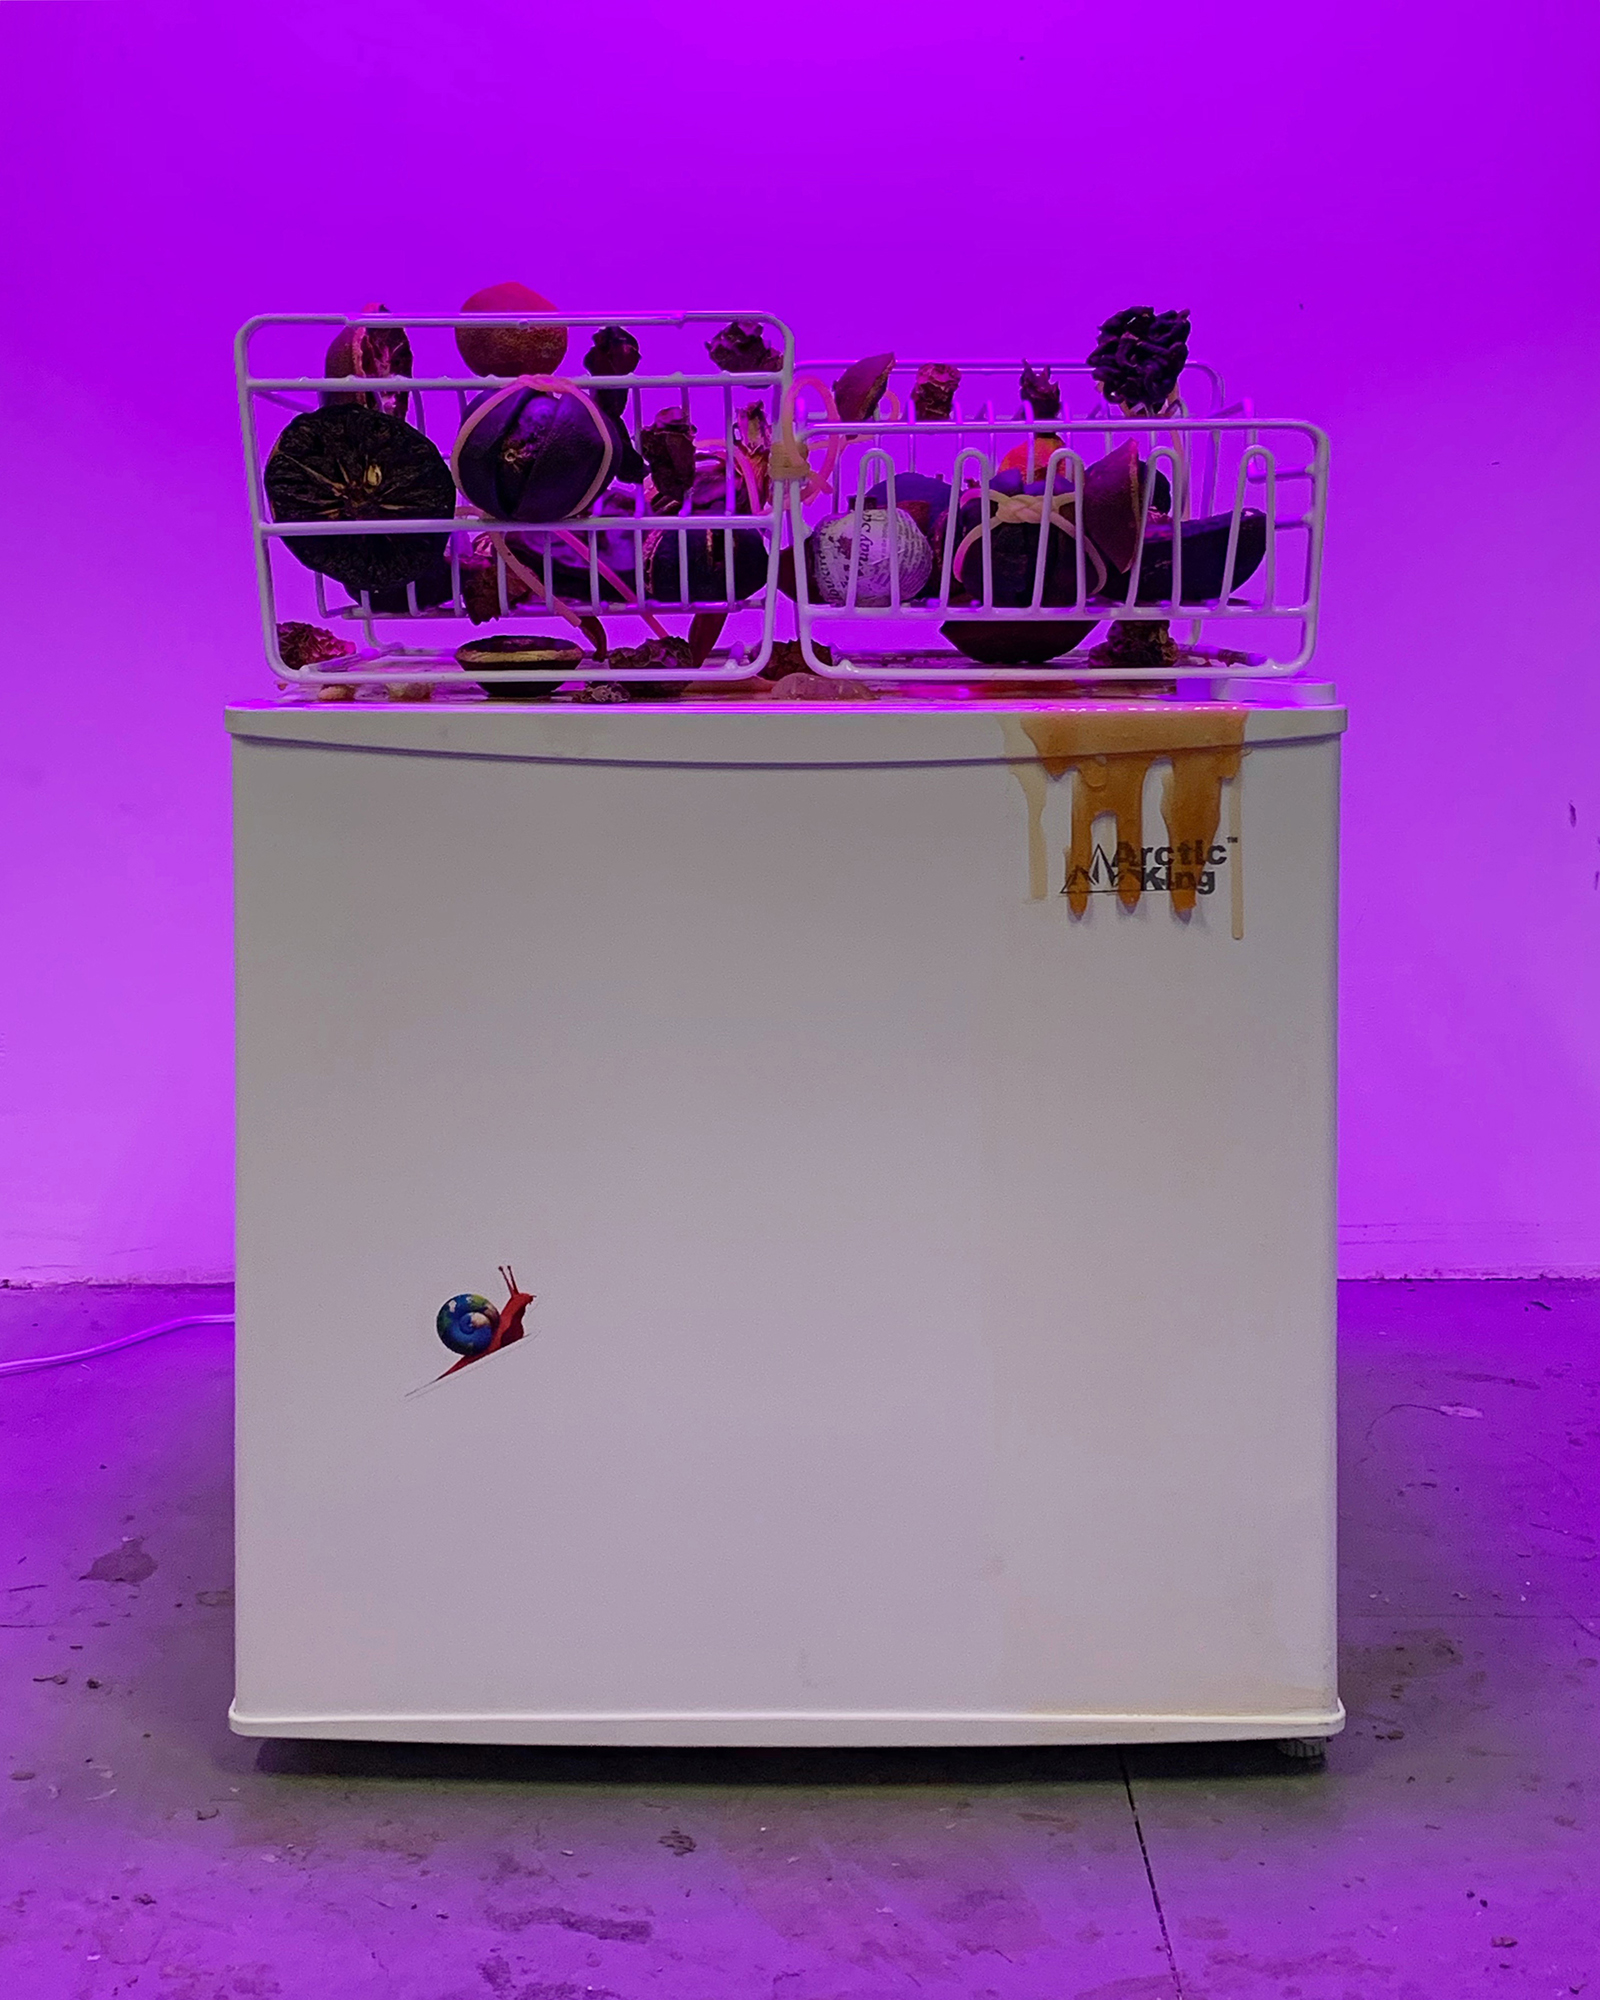 Seeking The Common Ground  2019 Mini freezer, handmade popsicles with newspaper confetti, dish racks, preserved tropical fruit, frozen cube fruit, plant lights  18 x 19 x 27 inches